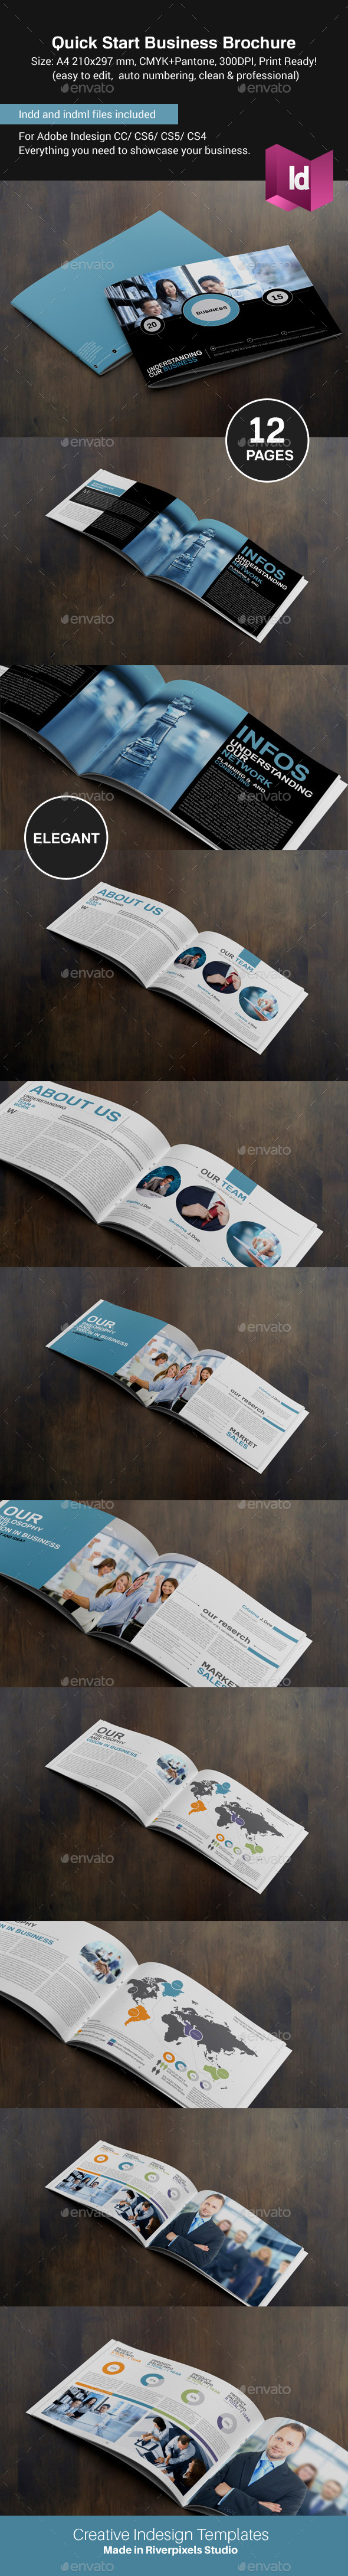 GraphicRiver Quick Start Business Brochure 8793207